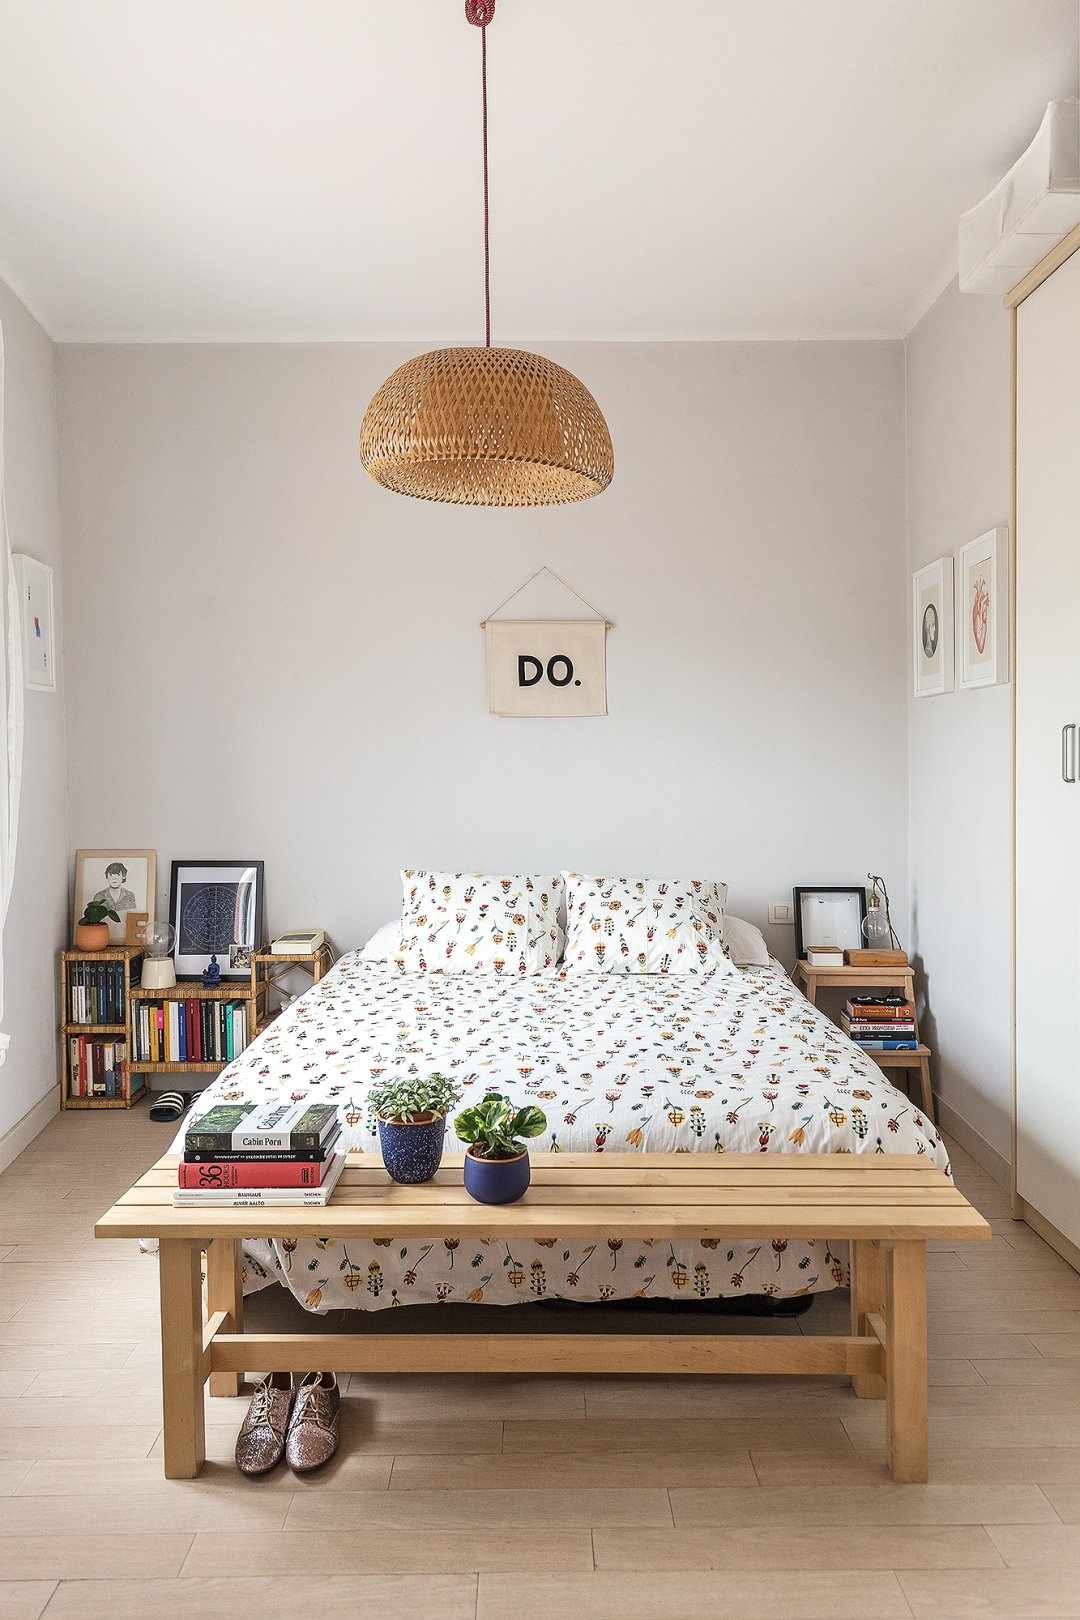 Get the Look: A Mix of Nordic & Natural | Apartment Therapy